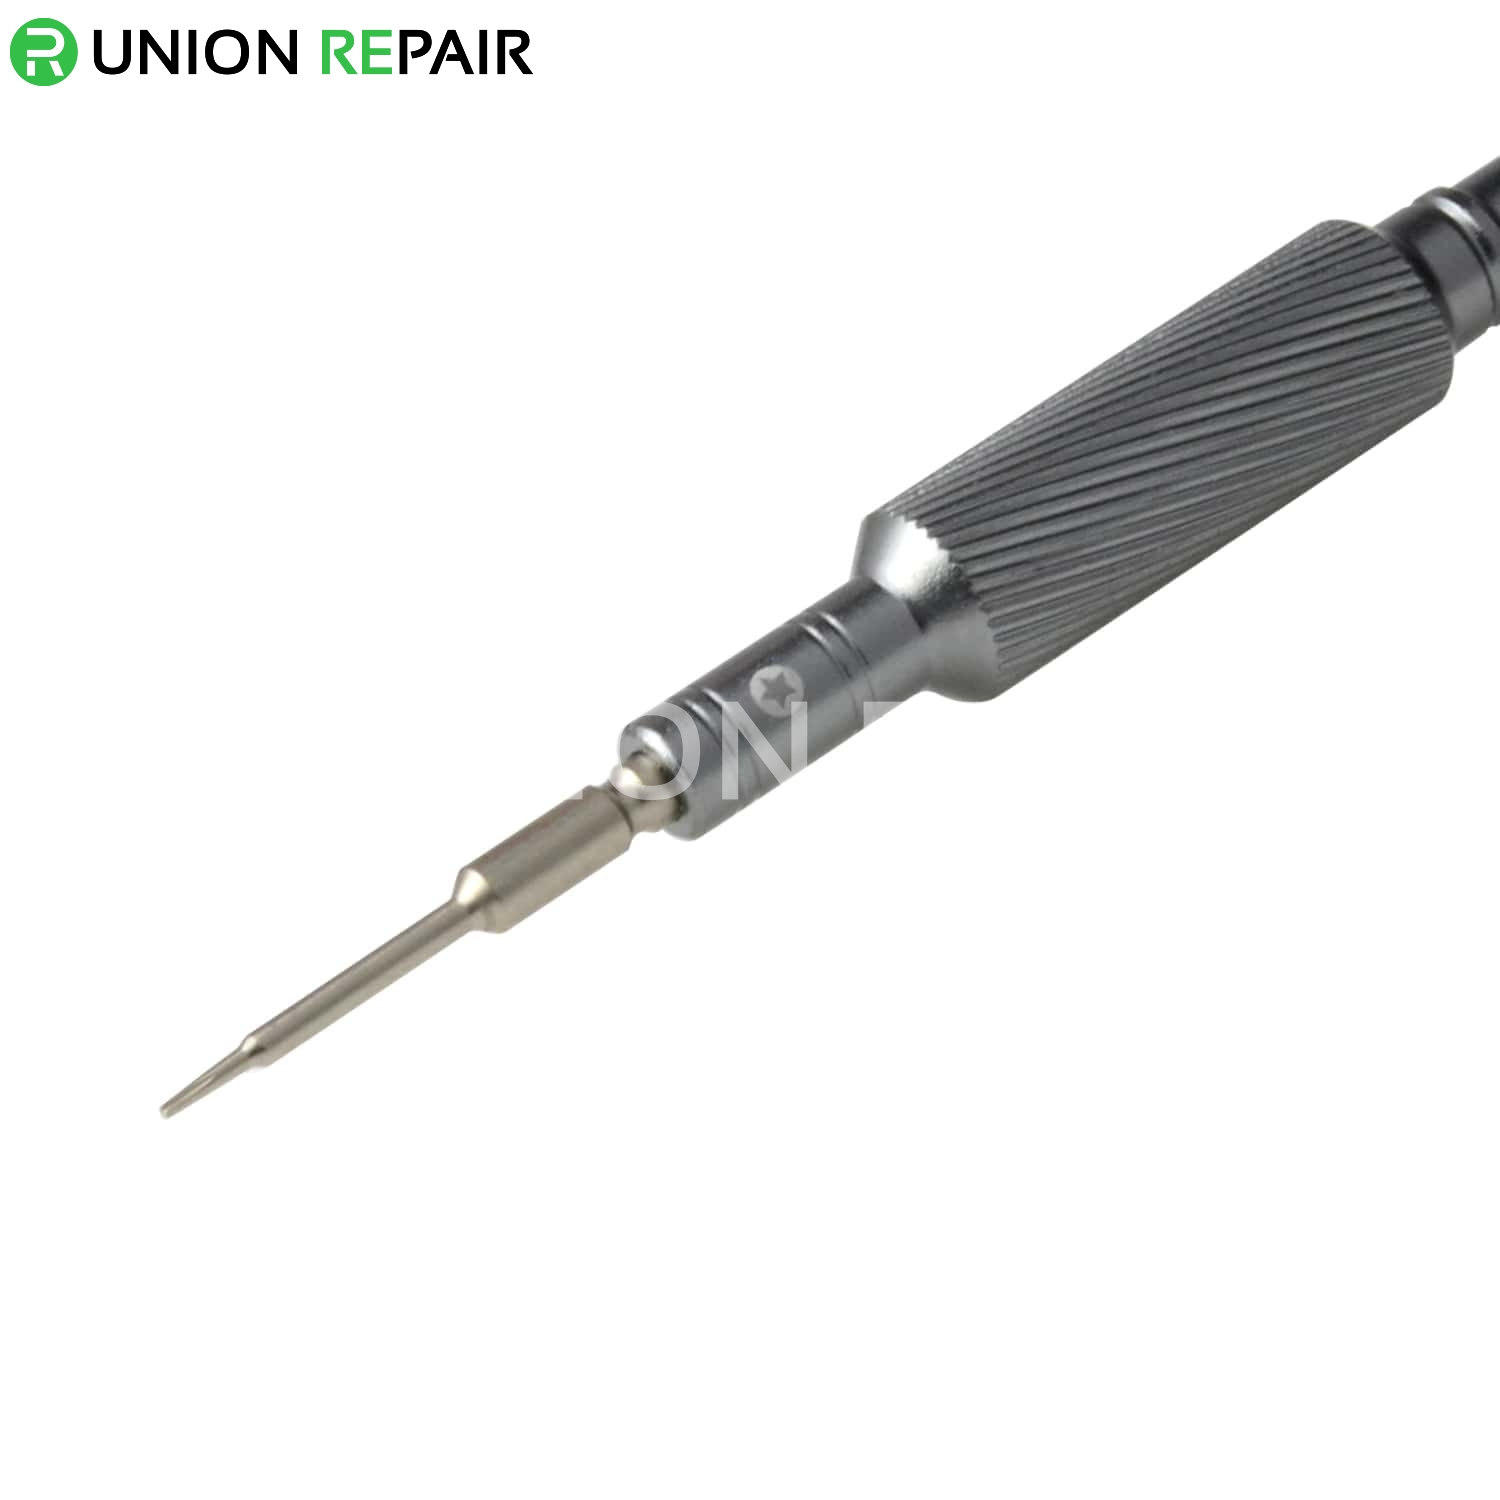 Antdriver High-Precision Antirust Alloy Screwdriver for Phone Repair